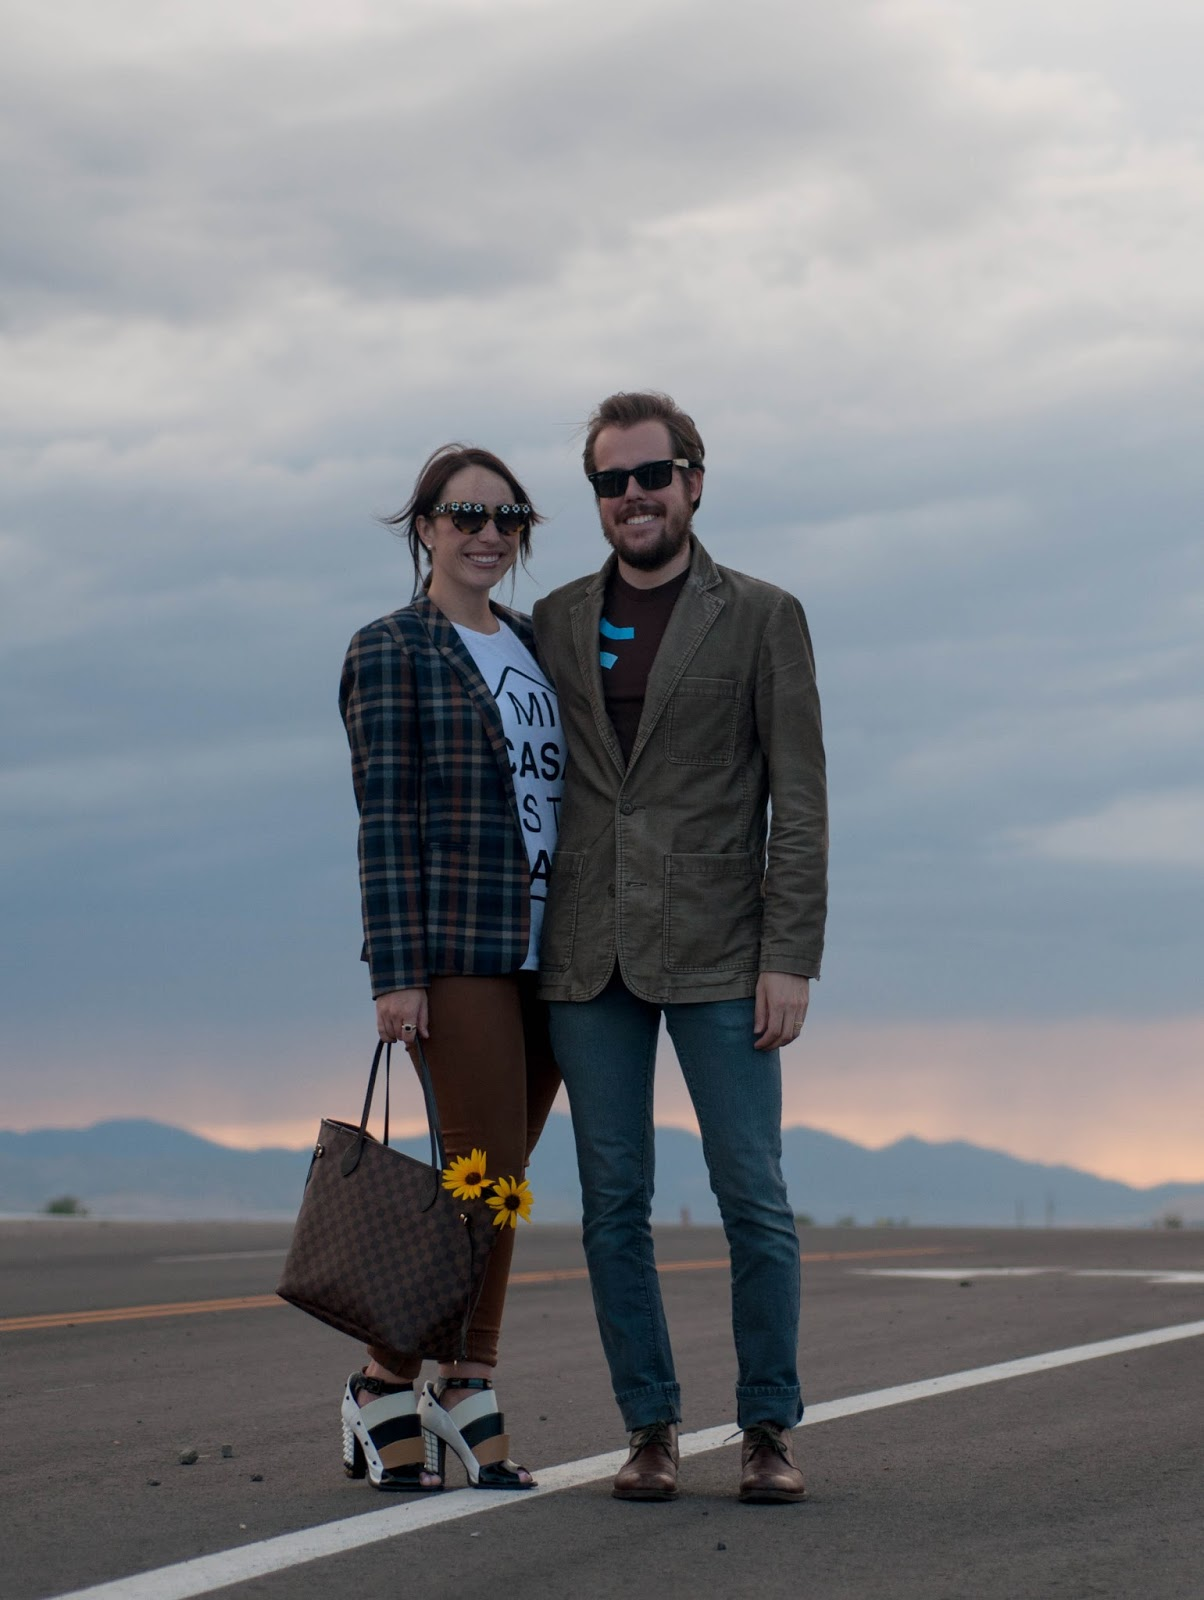 couples fashion, couples style, ootd, wiw, fendi 2013 runway shoes, louis vuitton, asos clothing